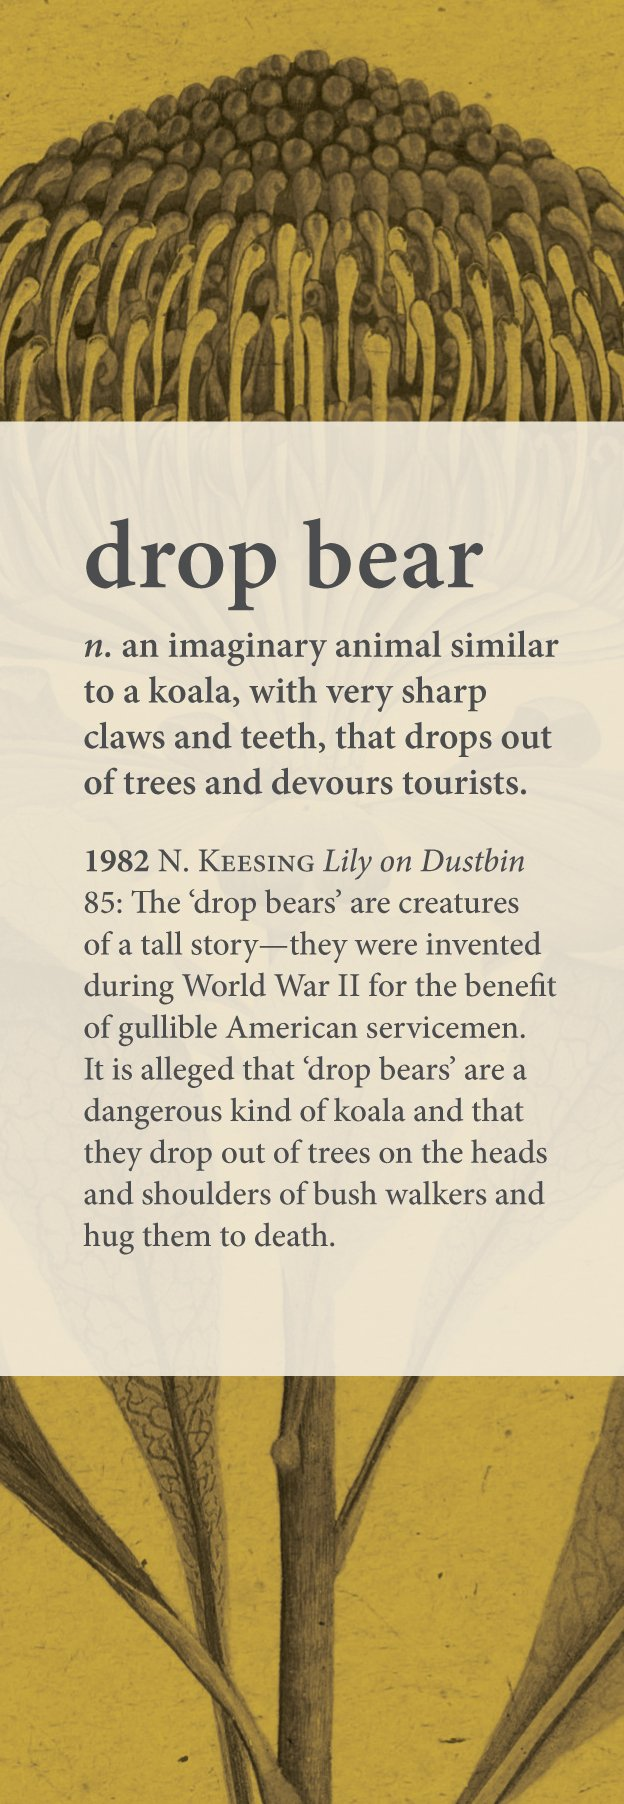 Australian National Dictionary second ed., new entry: drop bear. #KnowYourAussie @ozworders https://t.co/4pNWbX3zby